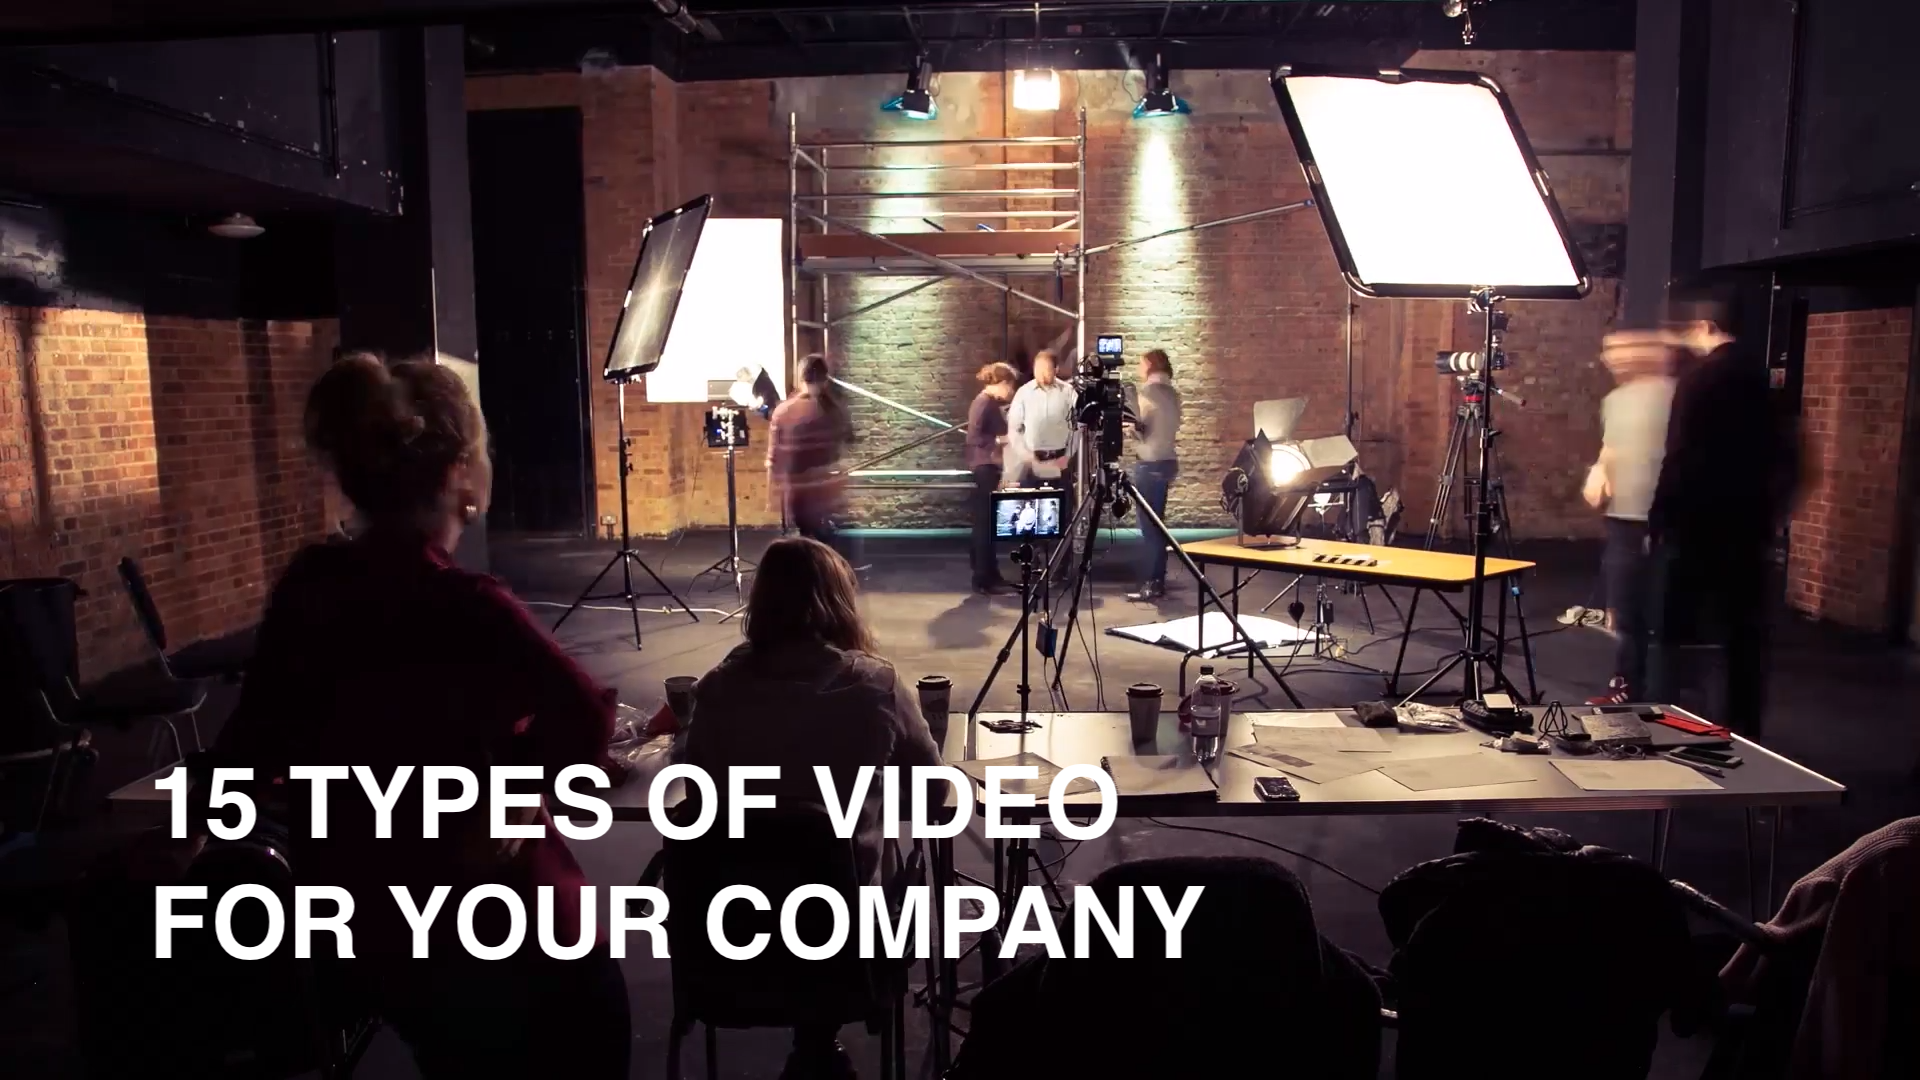 15 TYPES OF VIDEO PRODUCTION FOR YOUR COMPNY